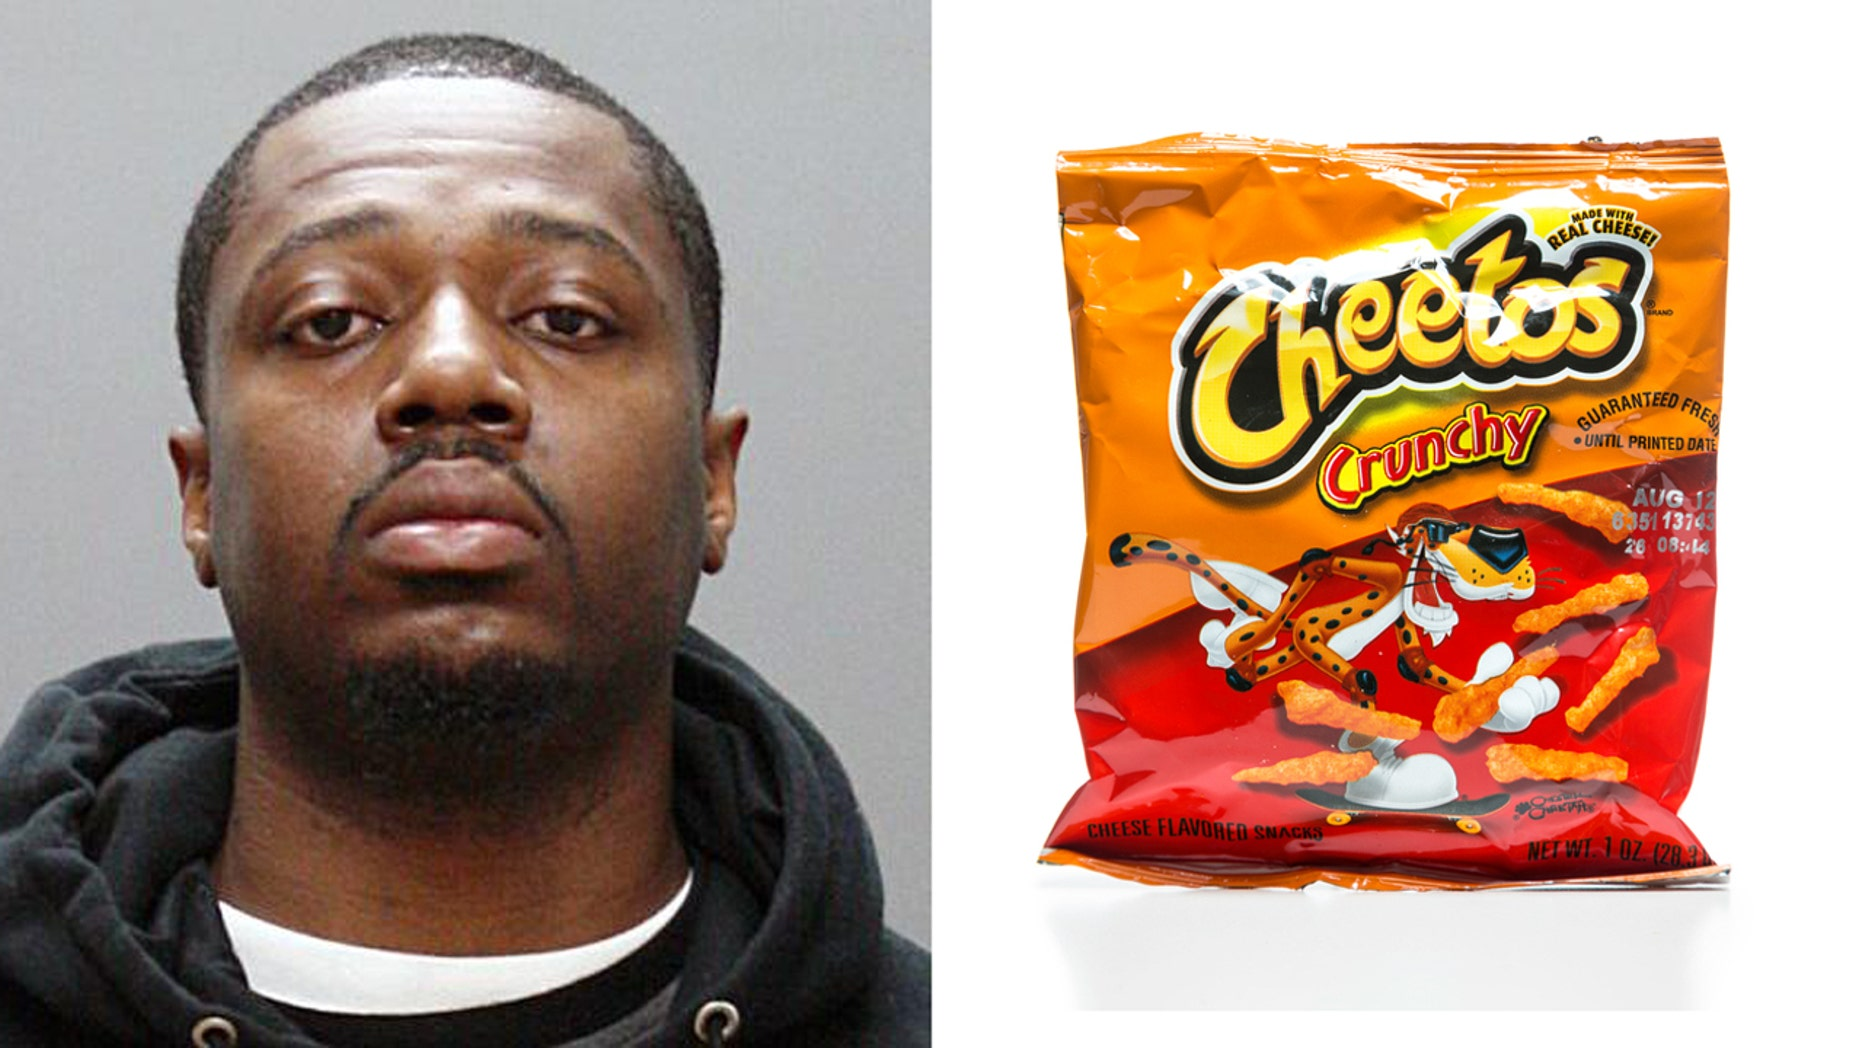 Shemroy Williams on Taunton, Mass. was found guilty of attempting to burn down his fiancee's house while she was inside.  Investigators determined he attempted to use Cheetos to accelerate the fire.